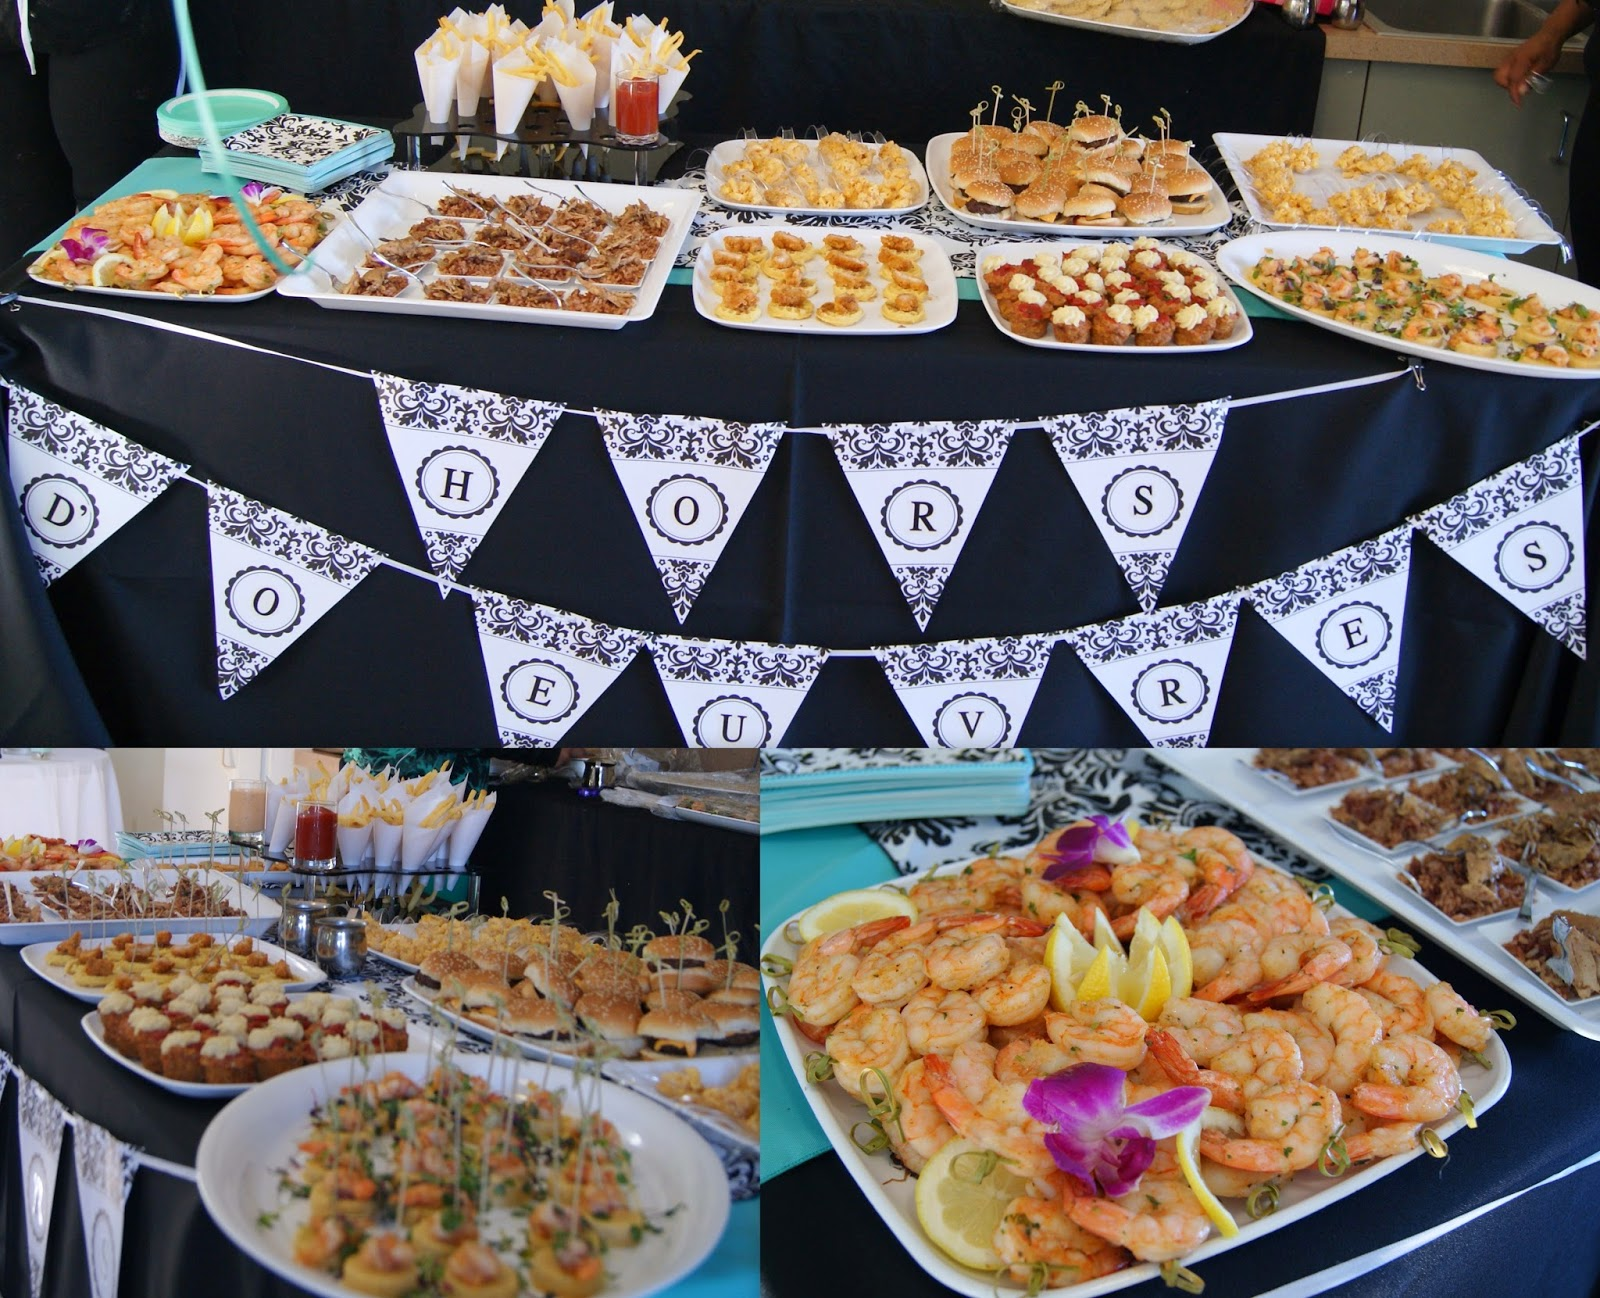 Breakfast At Tiffany S Themed Party Food